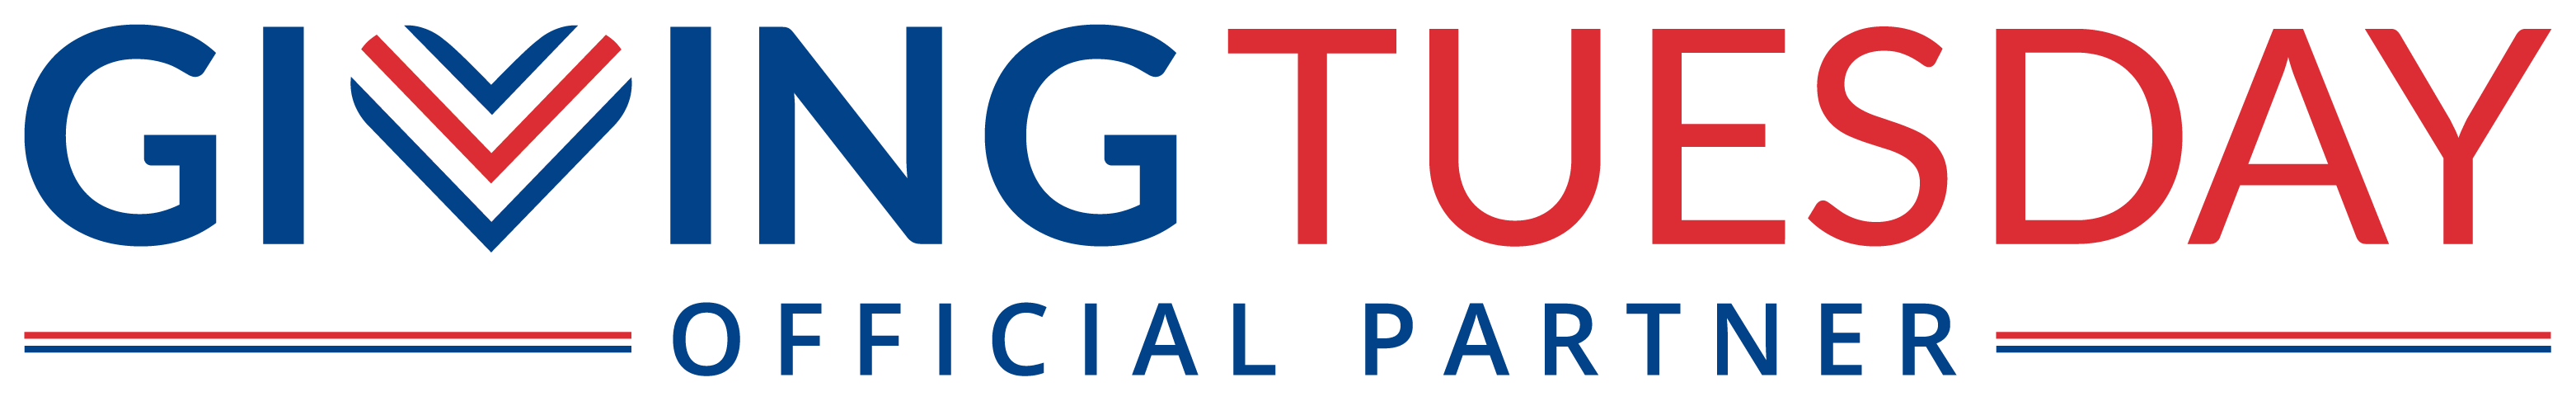 Giving Tuesday Official Partner Logo